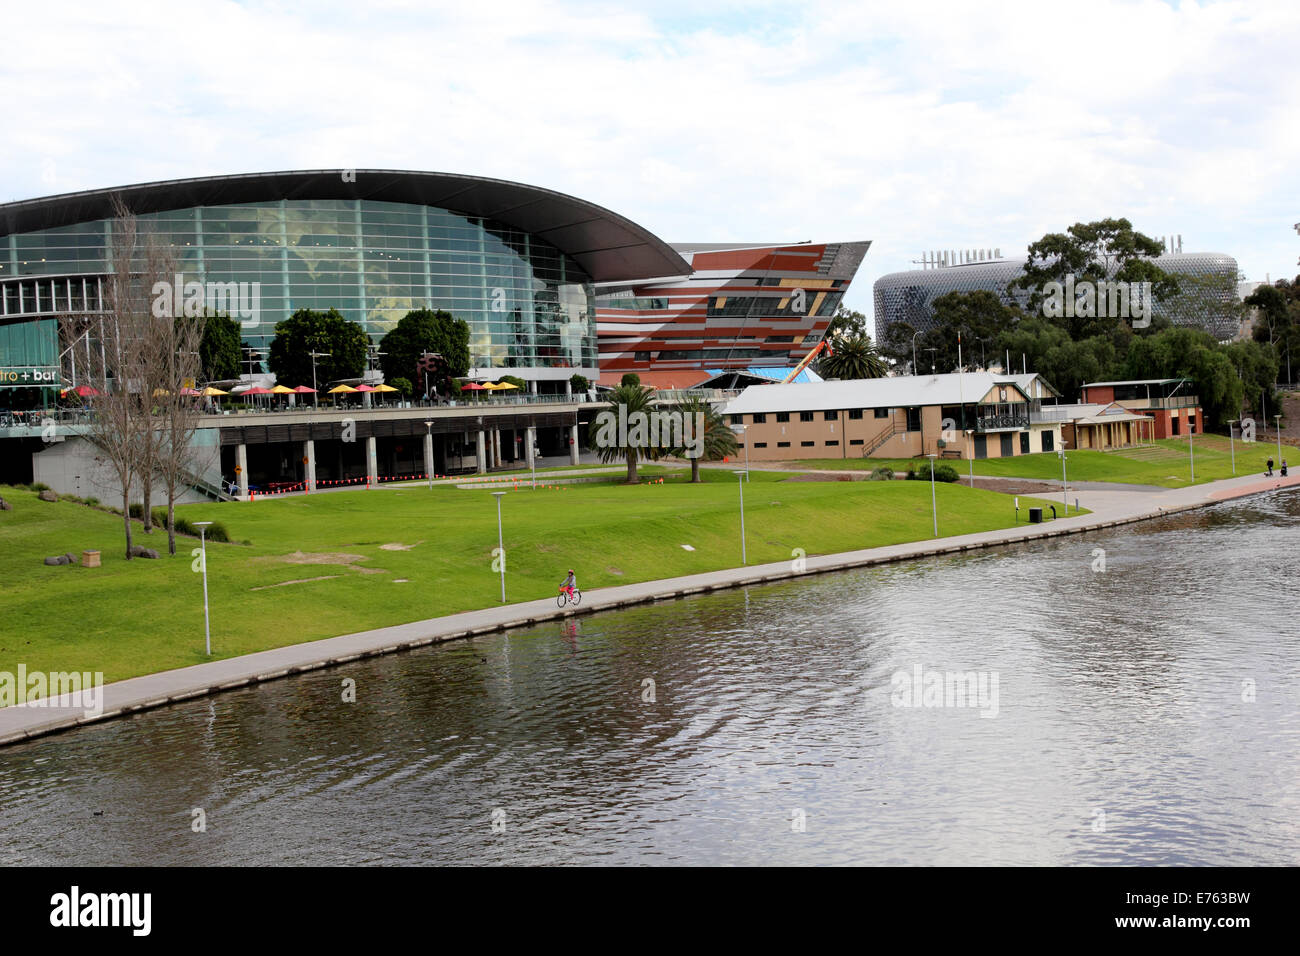 The Convention Centre along the River Torrens and the SAHMRI building on the right in Adelaide Australia - Stock Image